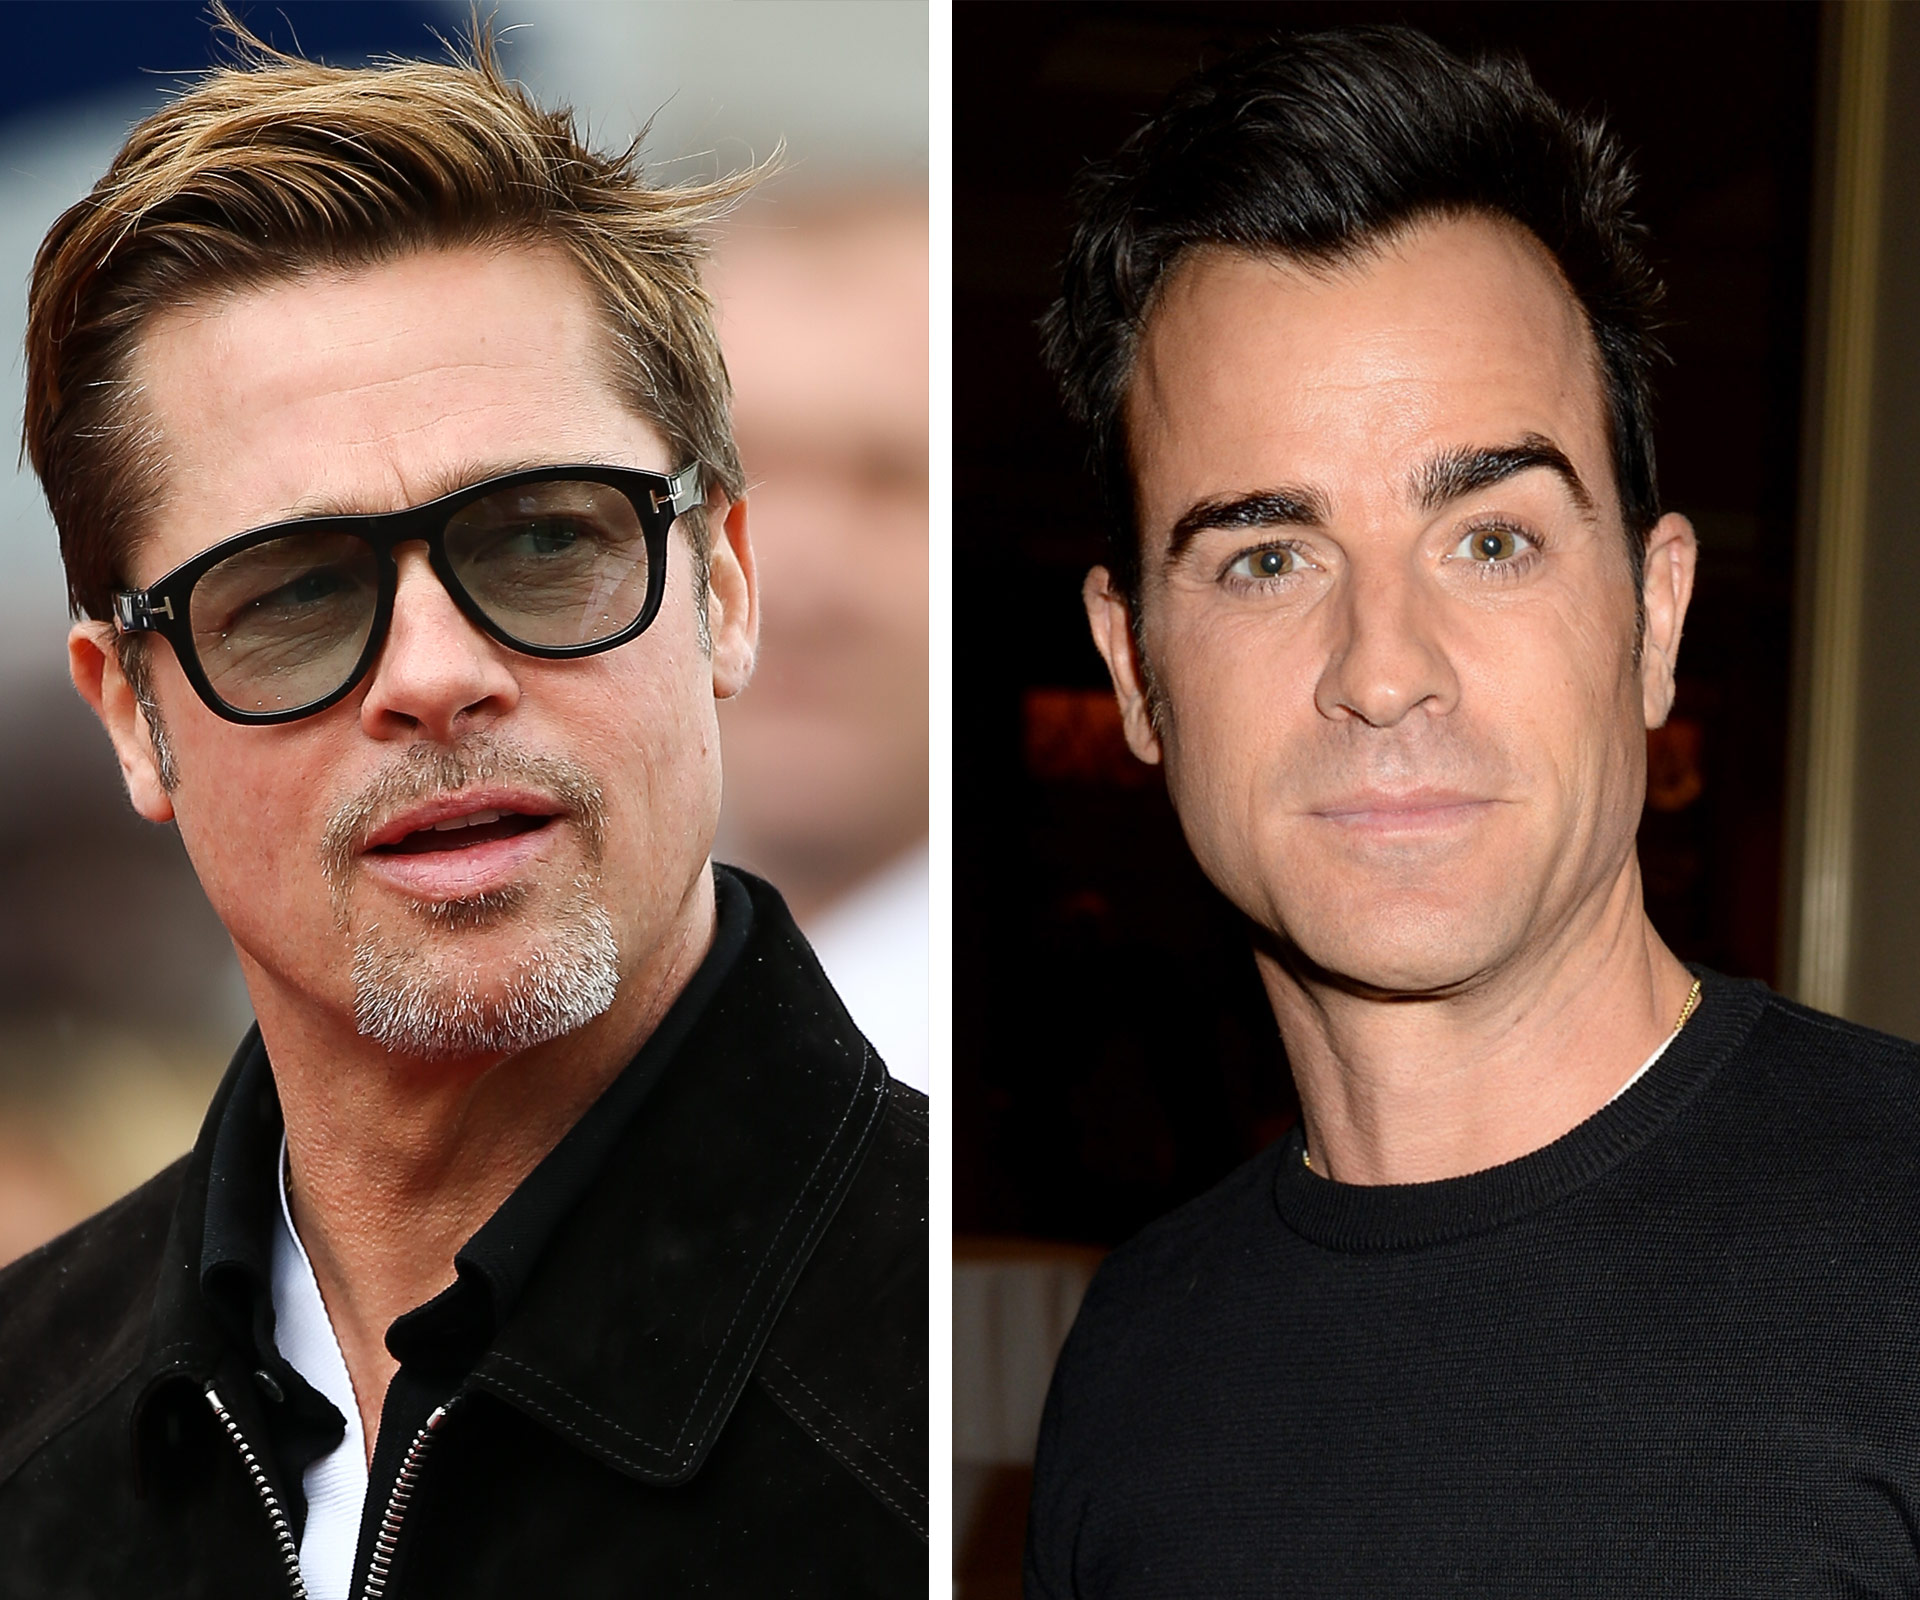 Justin Theroux throws major shade at Brad Pitt on social media